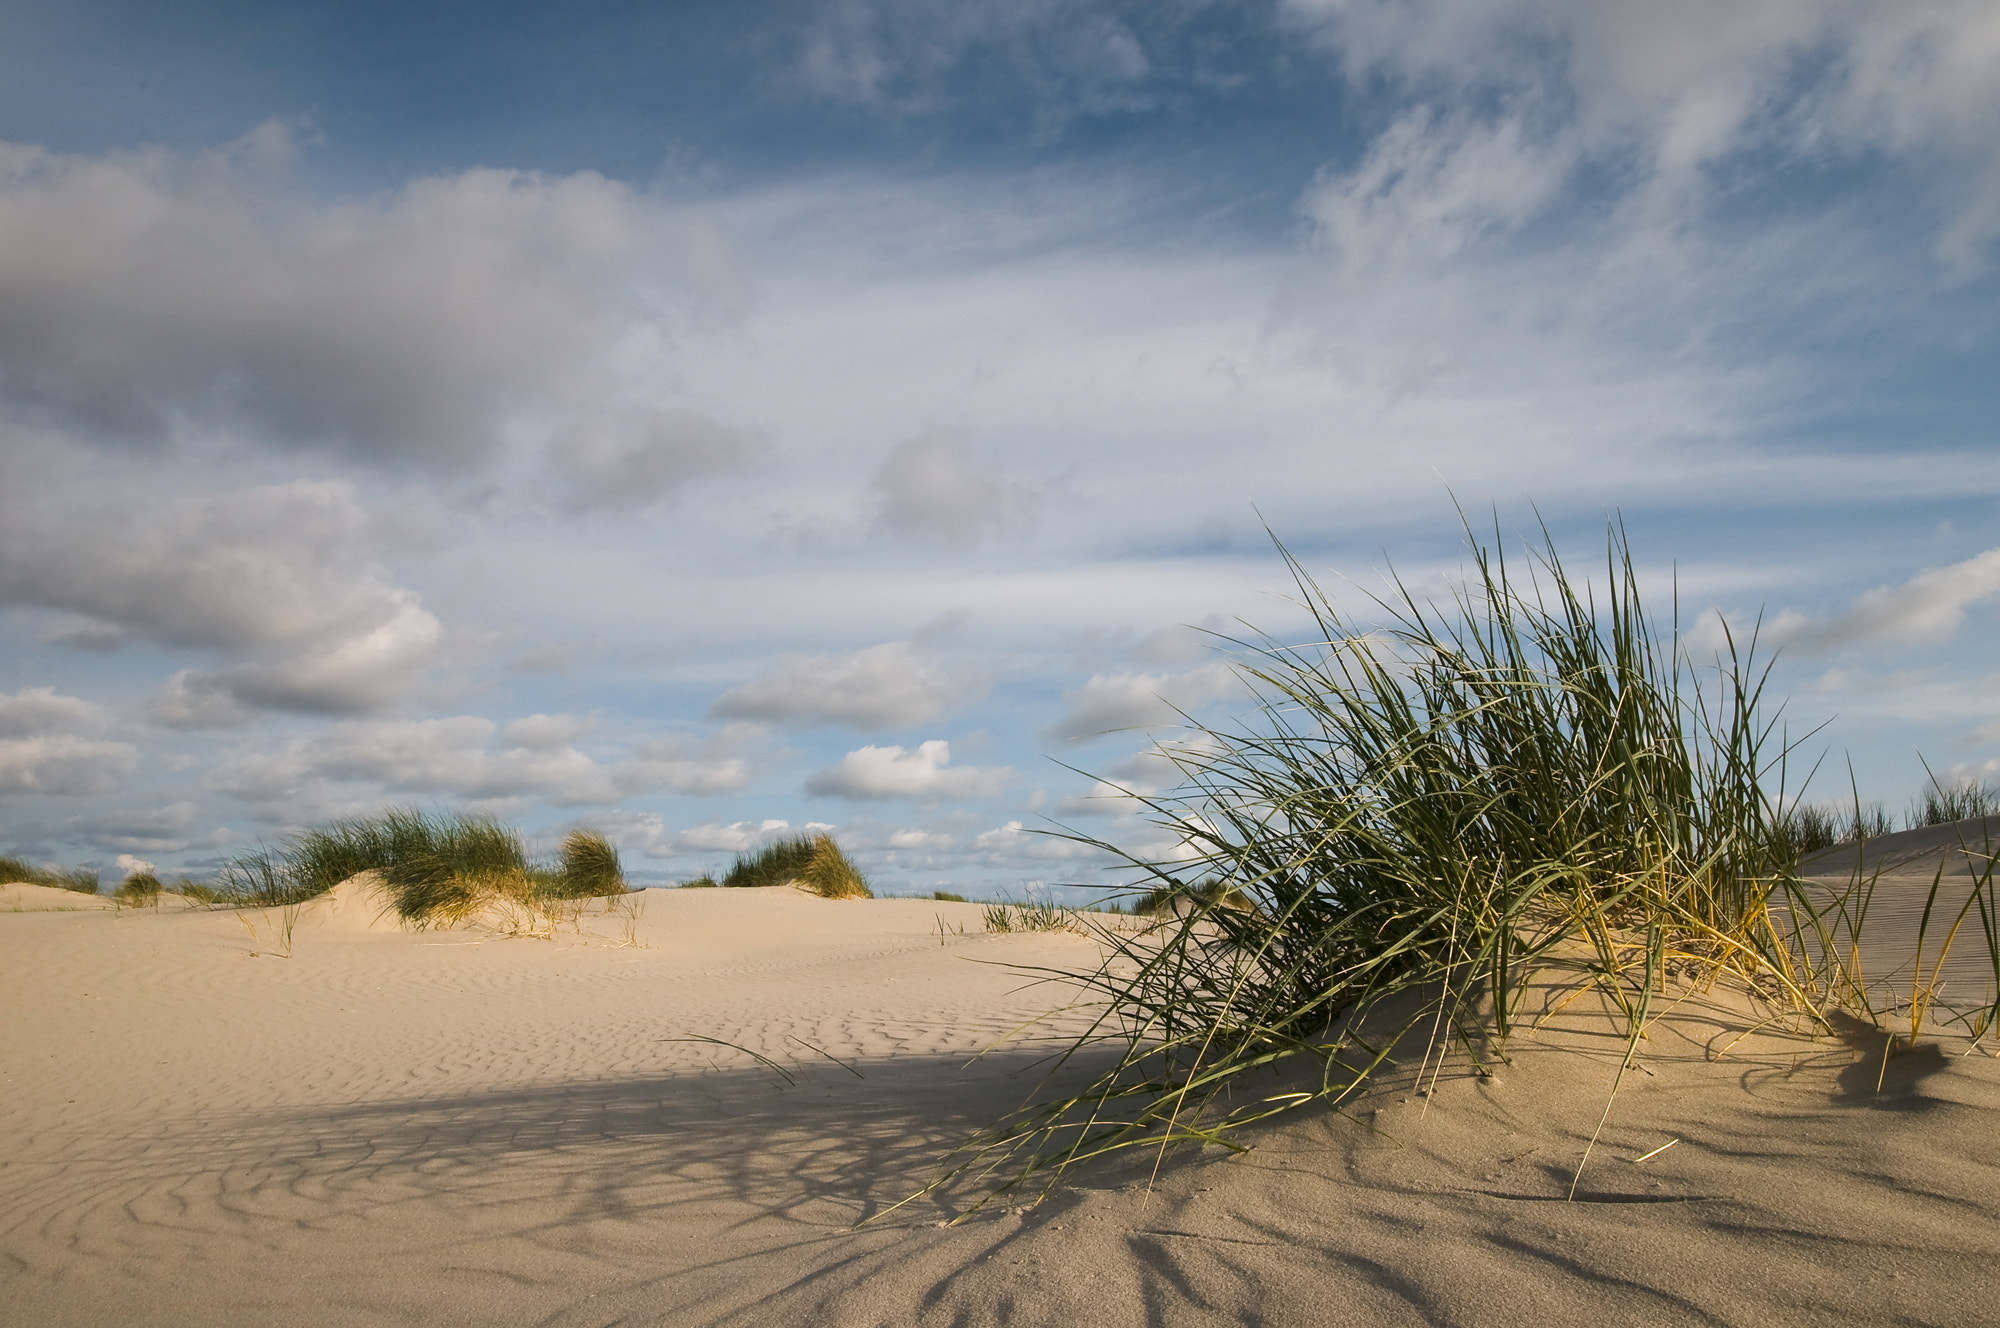 Photograph Grassy Beach by Daniel Bosma on 500px